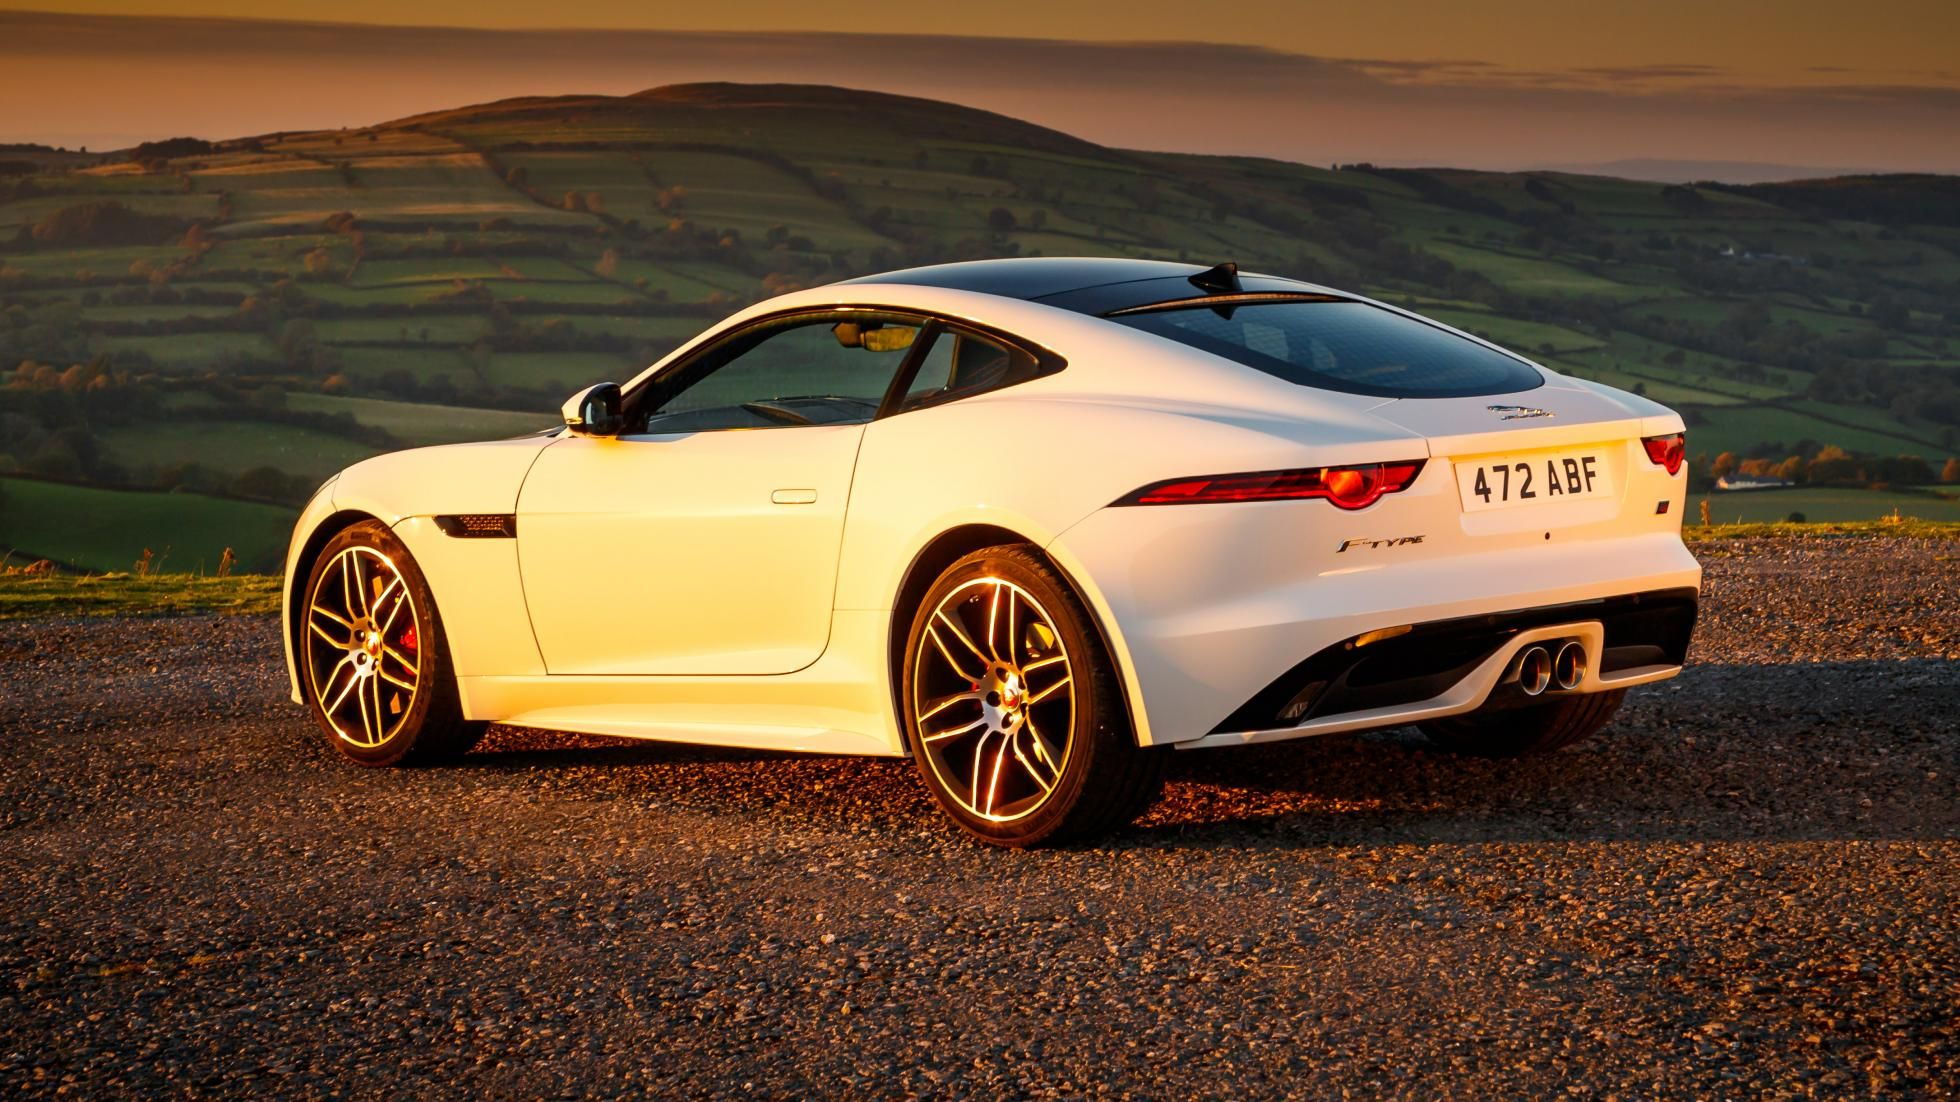 This Is The 2020 Jaguar F Type Jaguar F Type New Jaguar F Type New Jaguar